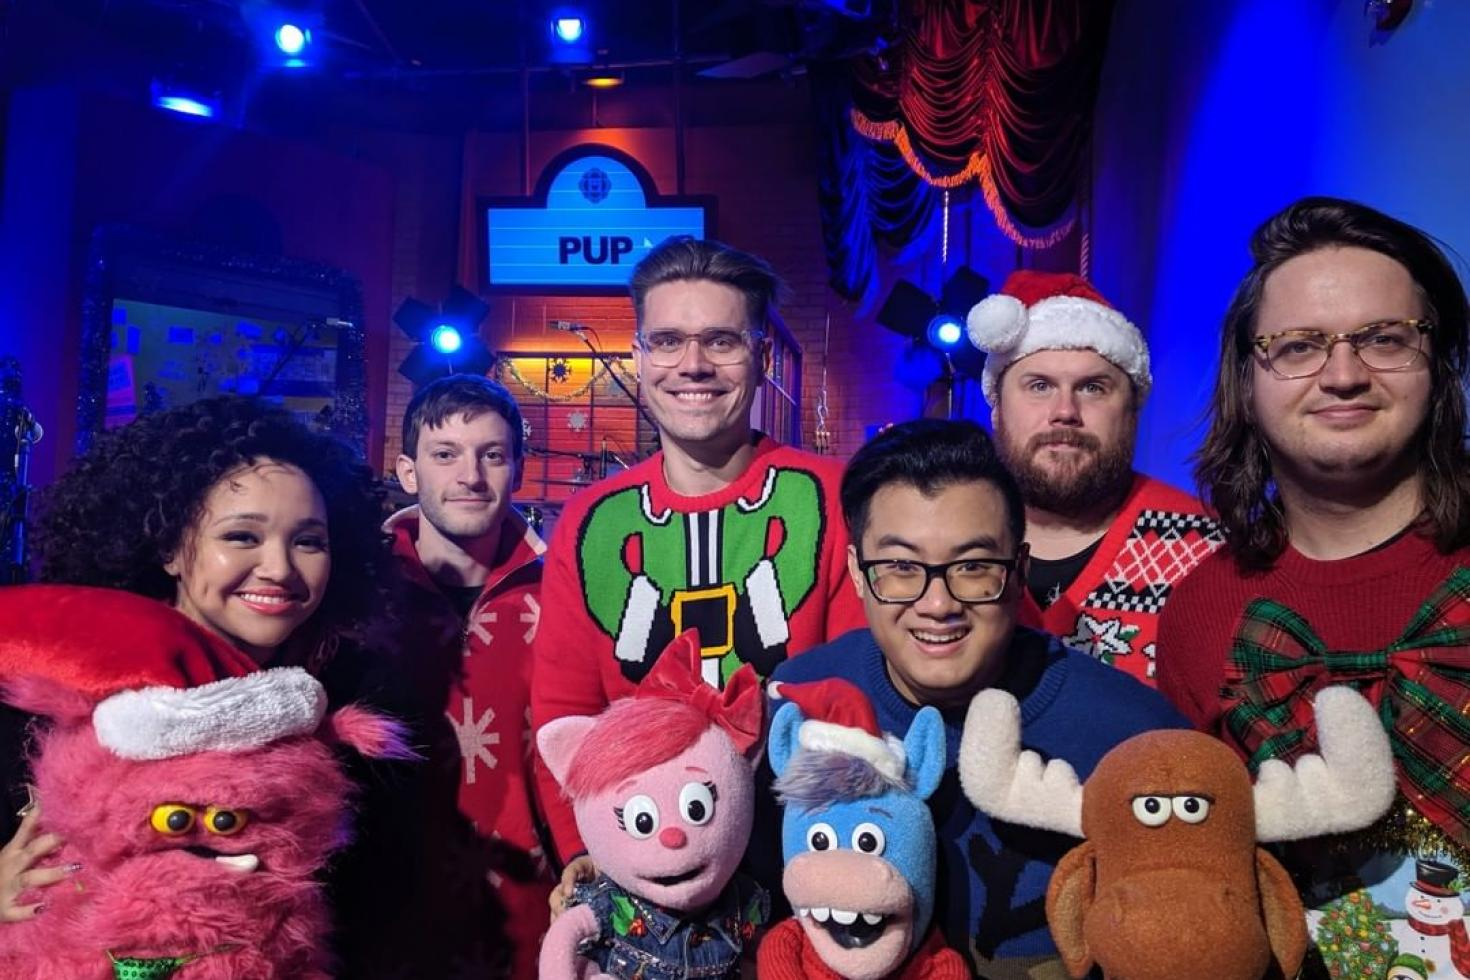 PUP perform Christmas reworking of 'Kids' for CBC Kids